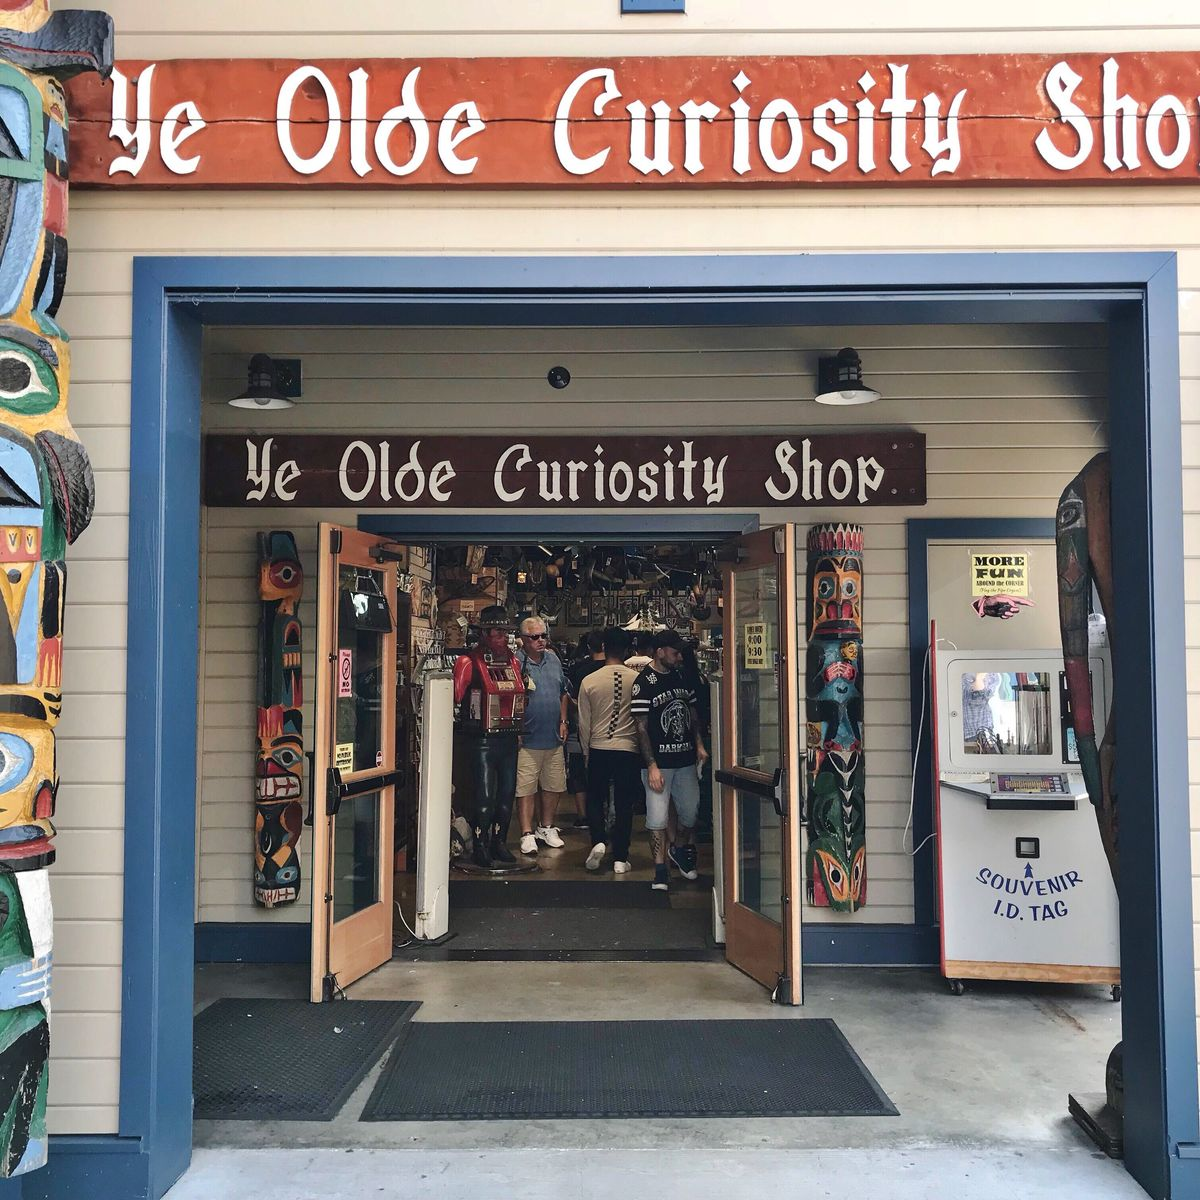 Seattle's Ye Olde Curiosity Shop entrance